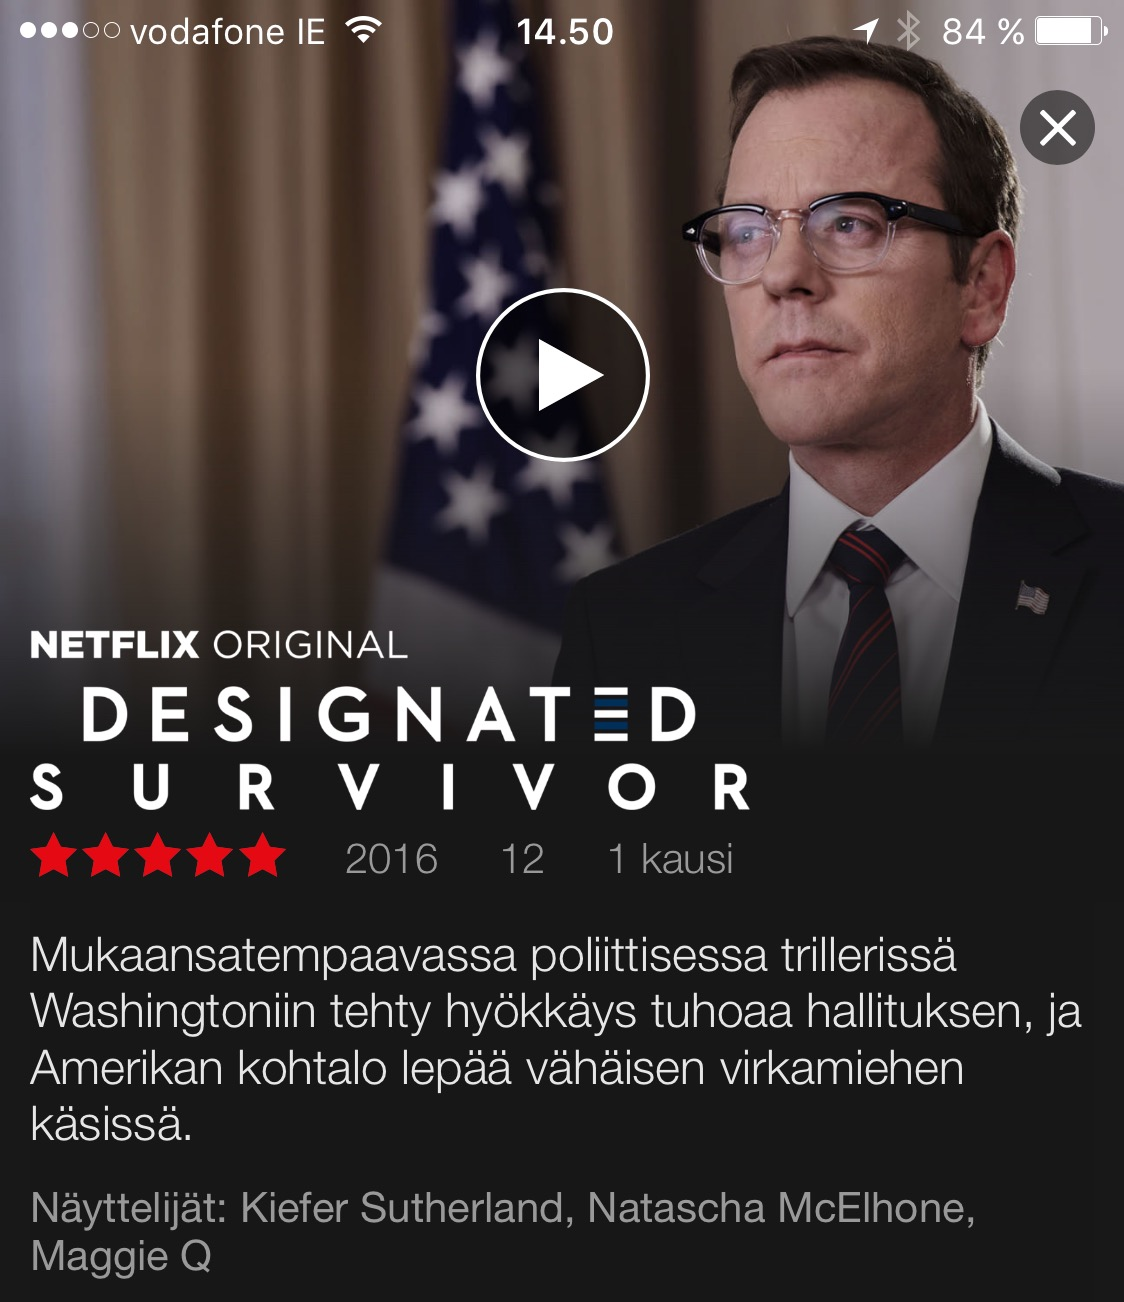 Netflix Designated Survivor